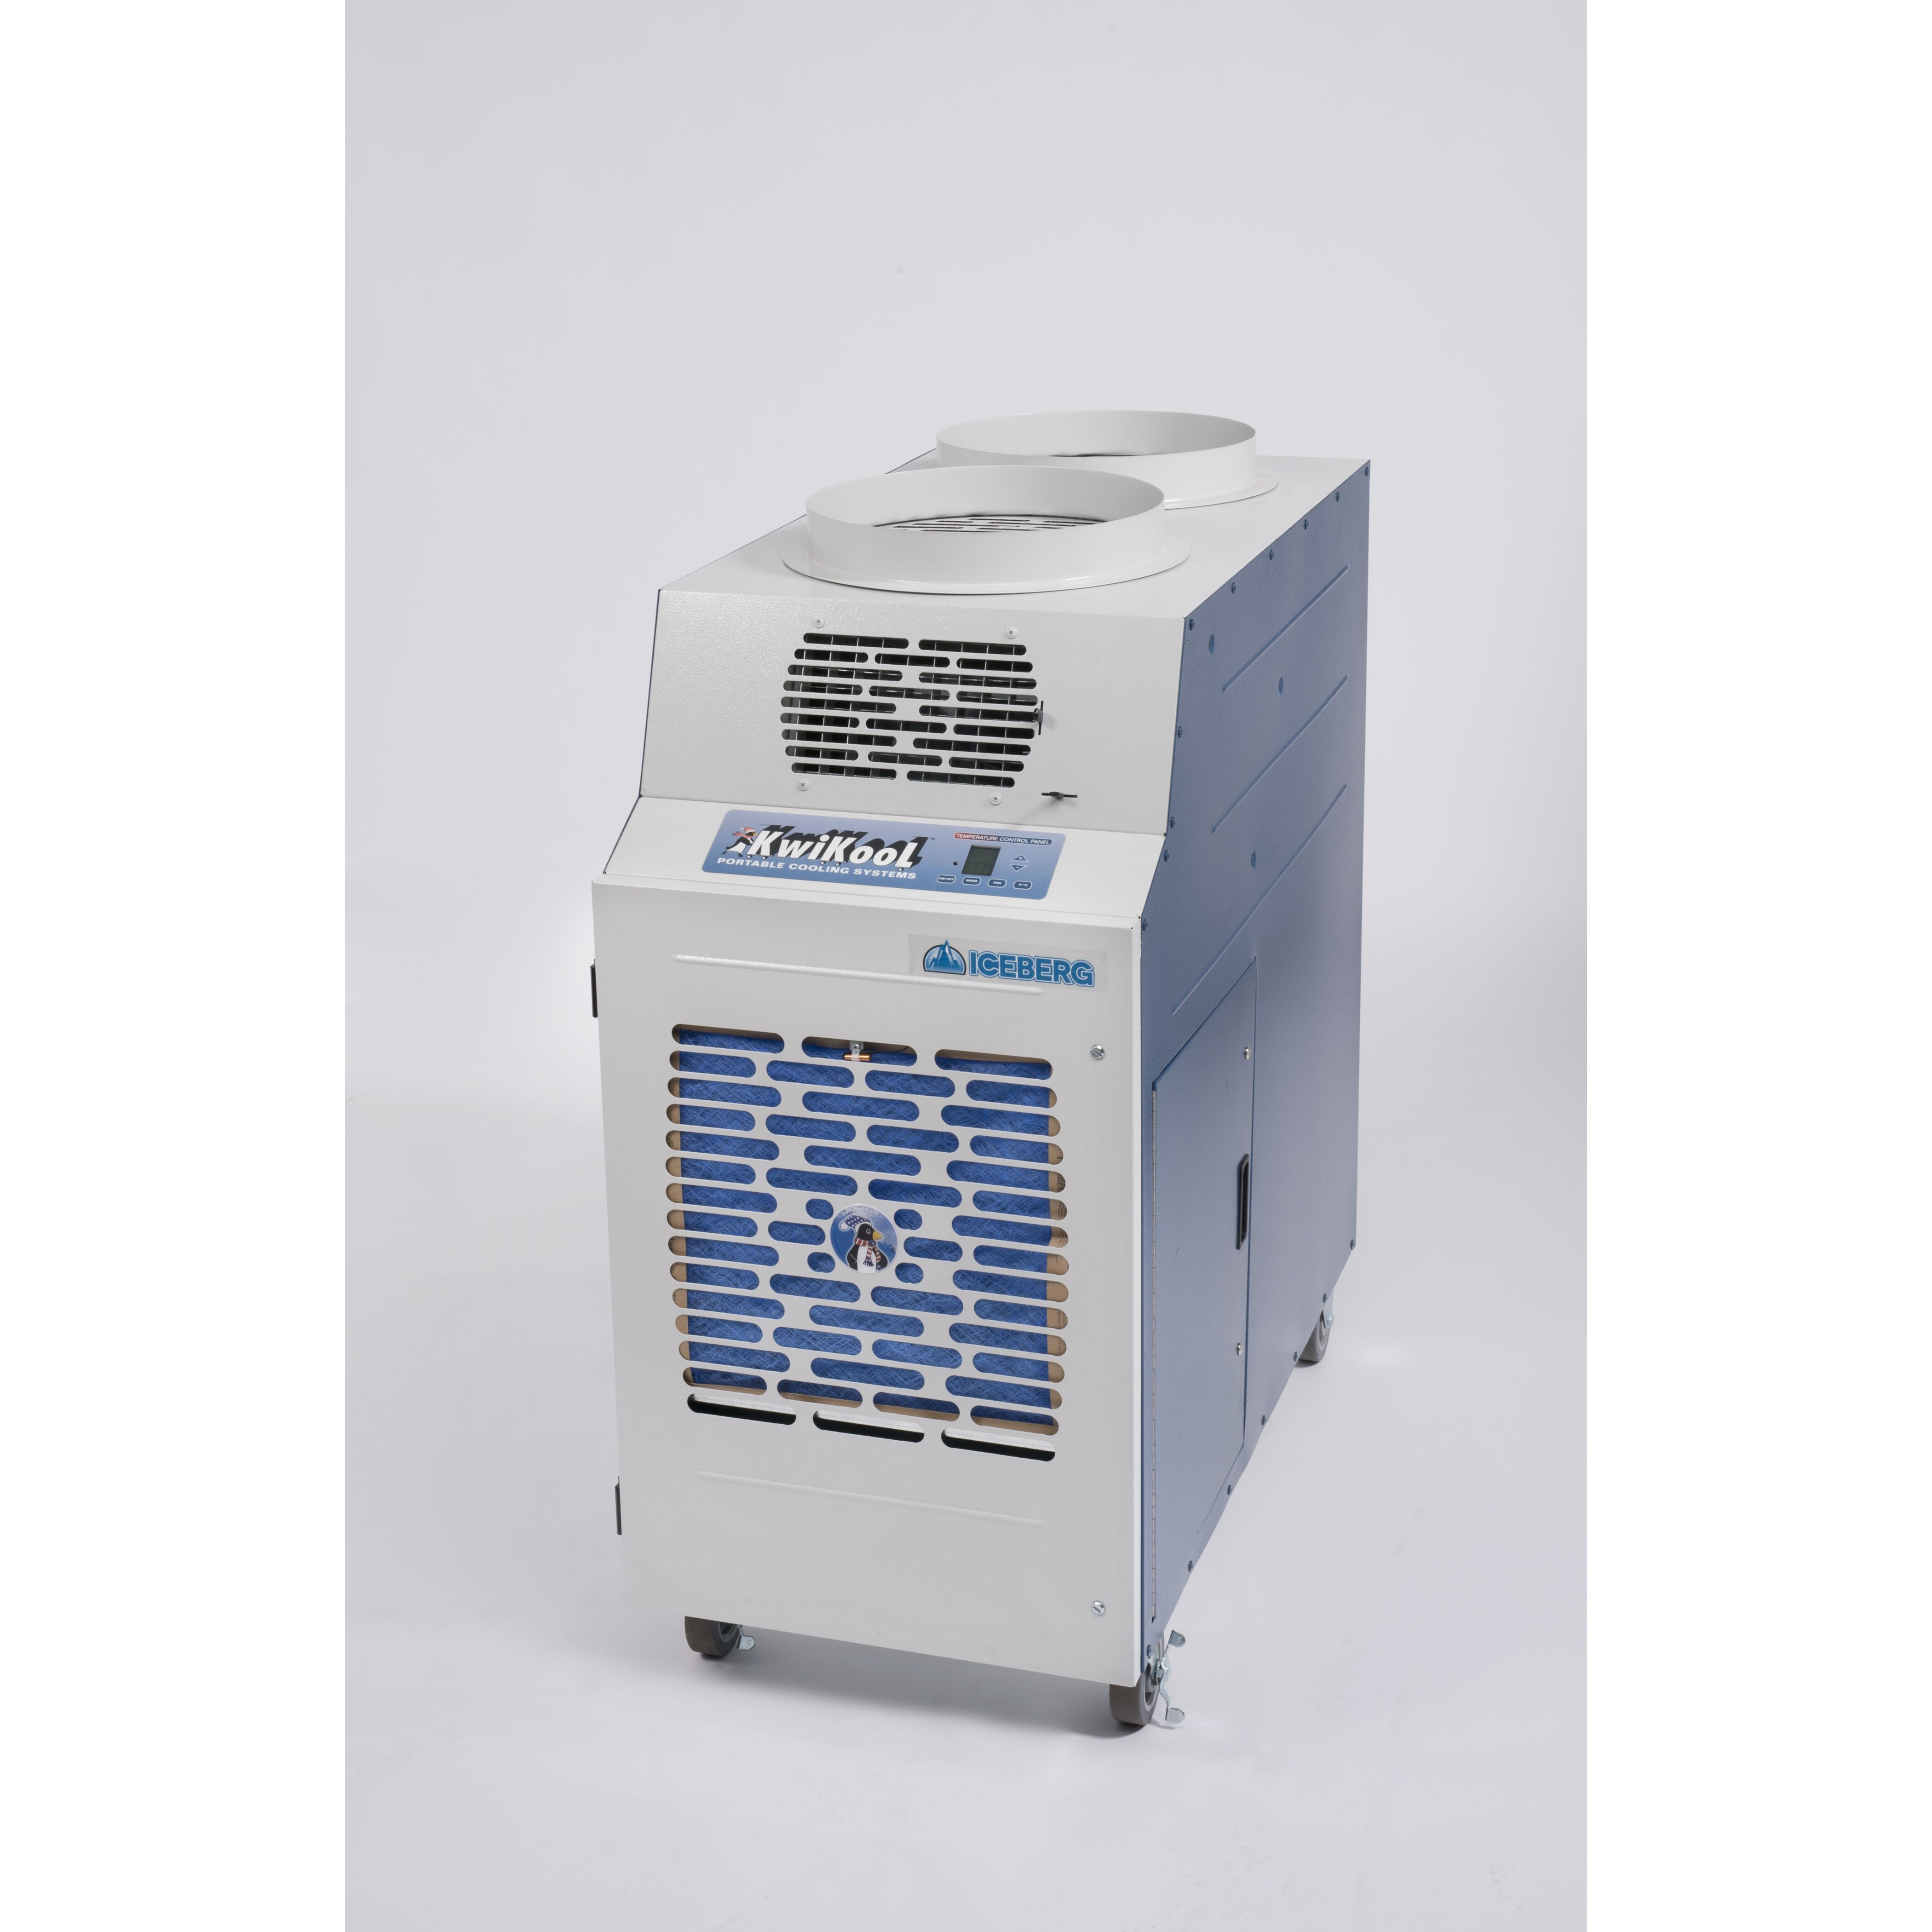 #2C487A KwiKool Iceberg Series 23 500 BTU Portable Air Conditioner  Brand New 11701 Desk Air Conditioner images with 4200x4200 px on helpvideos.info - Air Conditioners, Air Coolers and more